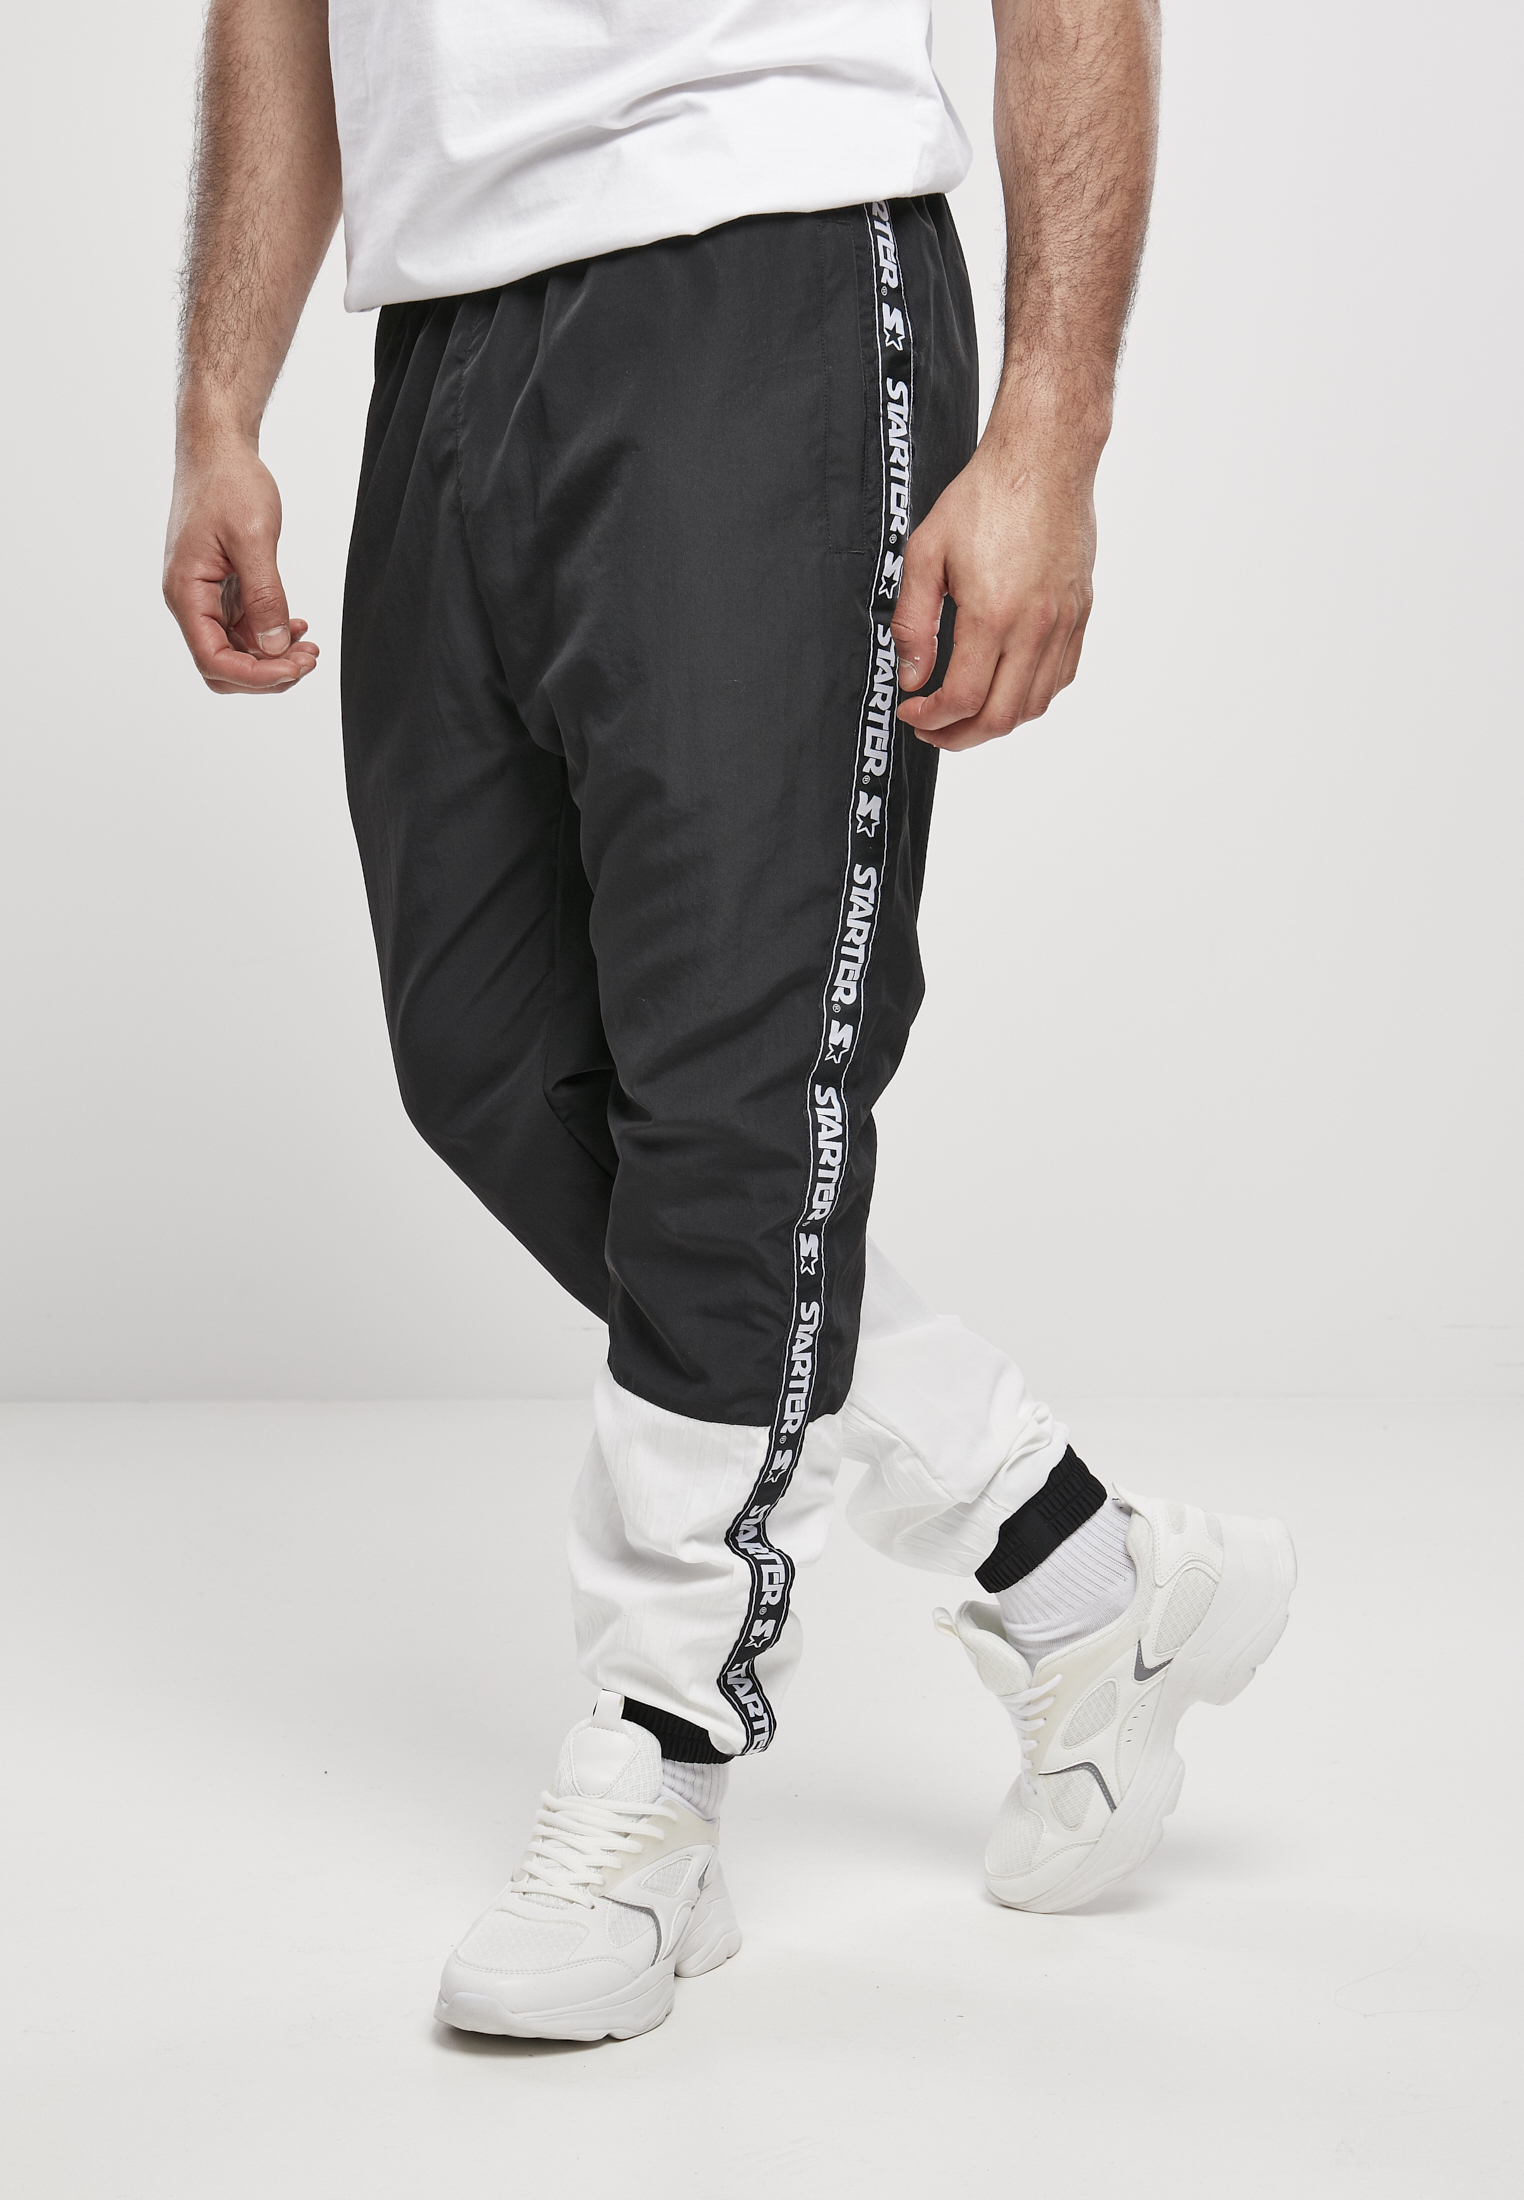 Starter Two Toned Jogging Pants XL